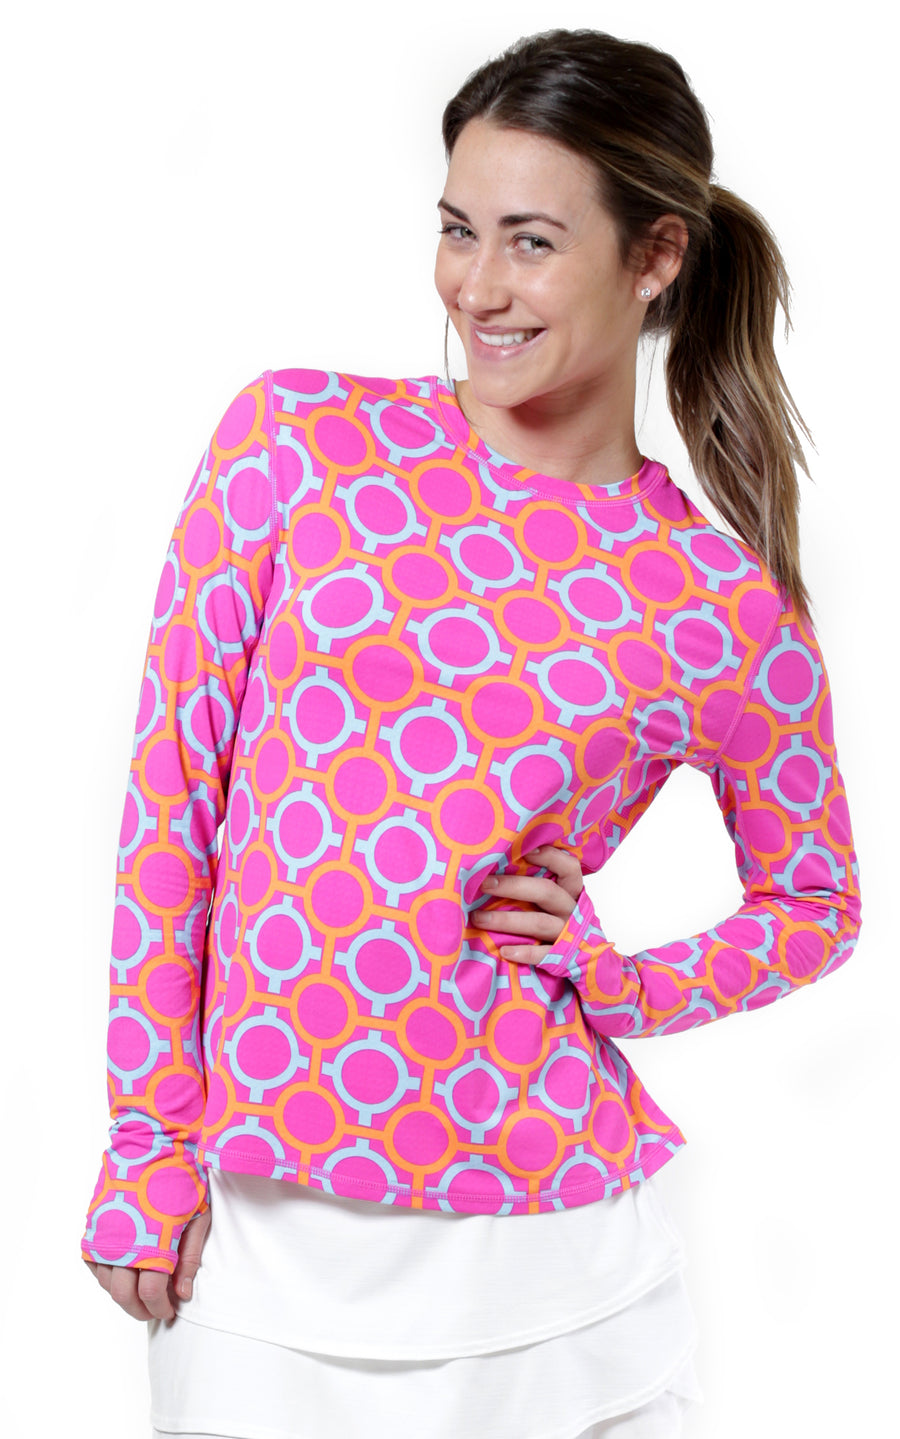 Perfect Match Pink Crew Neck Sun Protective Top - FINAL SALE